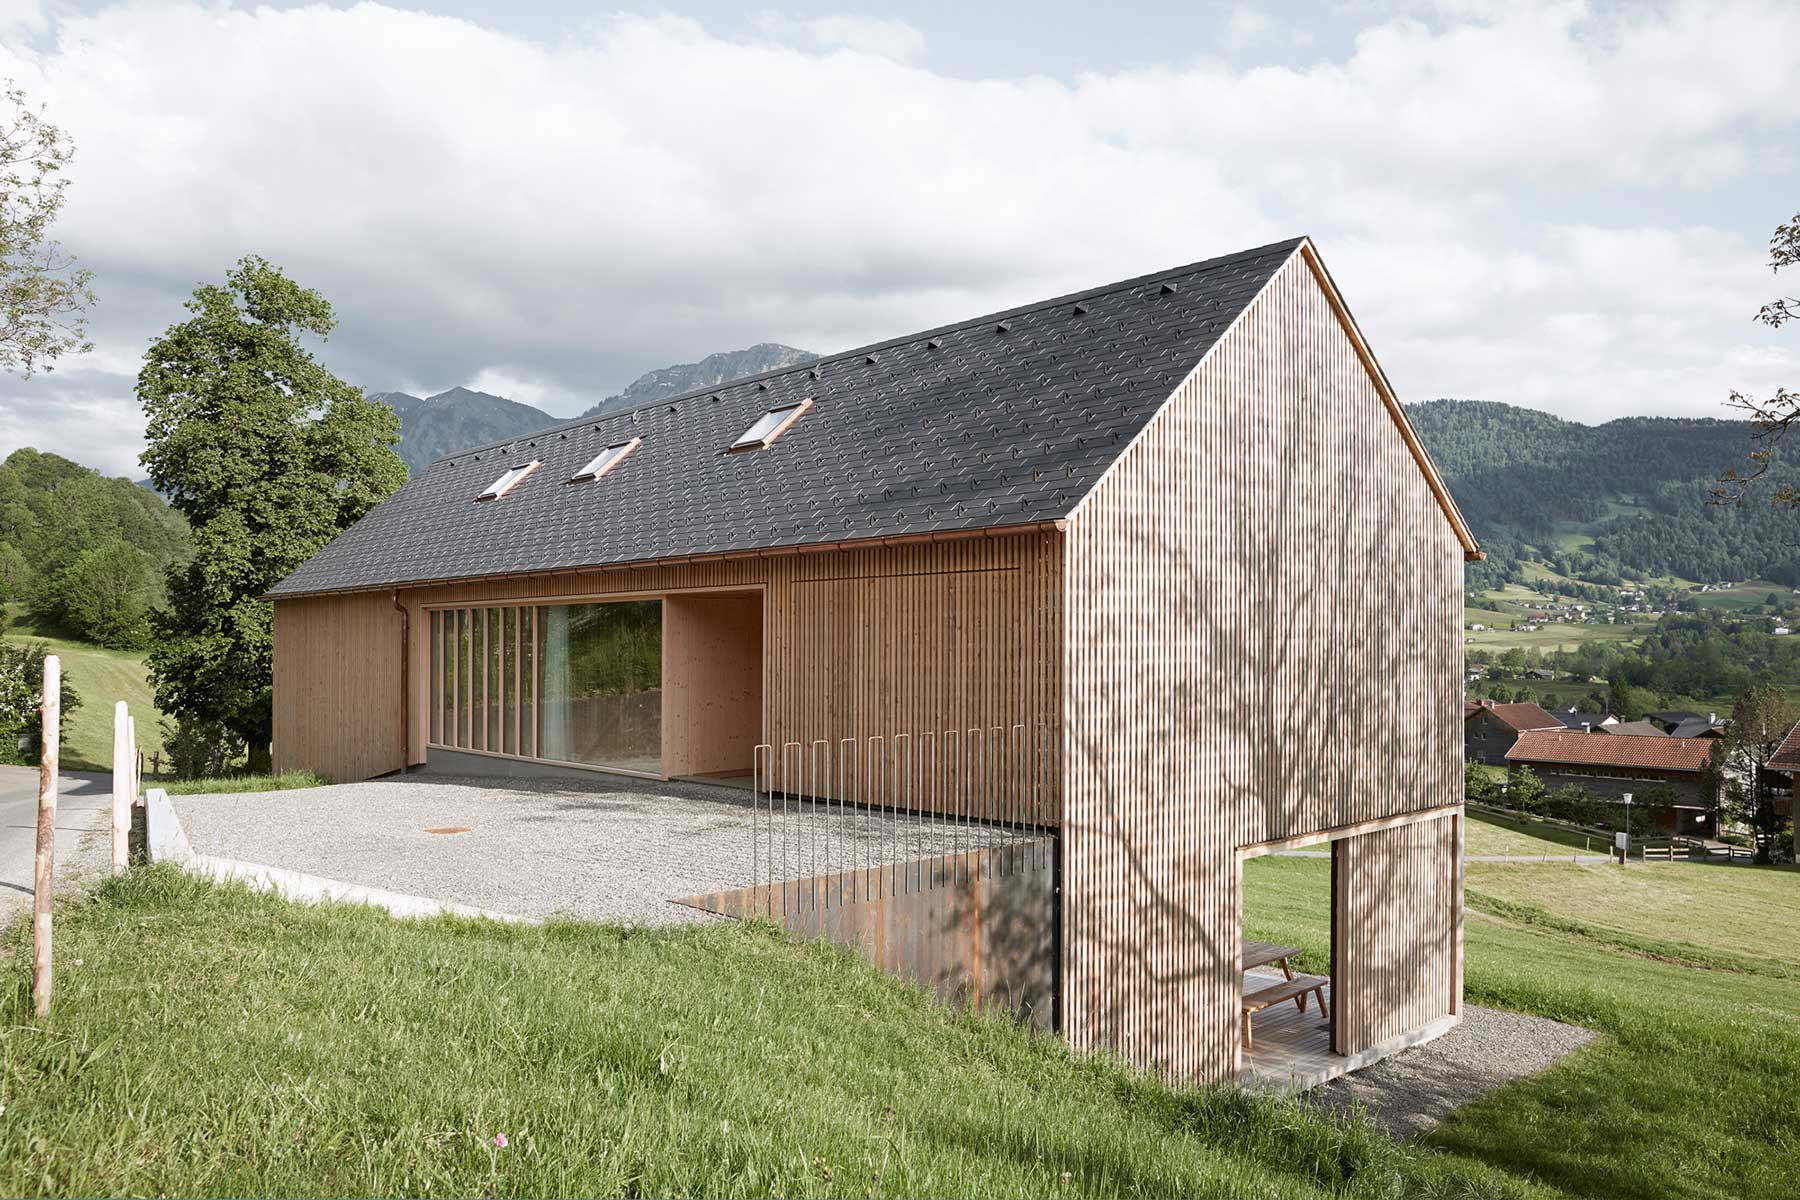 Fassadenverkleidung Holz Horizontal 15 Contemporary Roof Designs That Raise The Roof